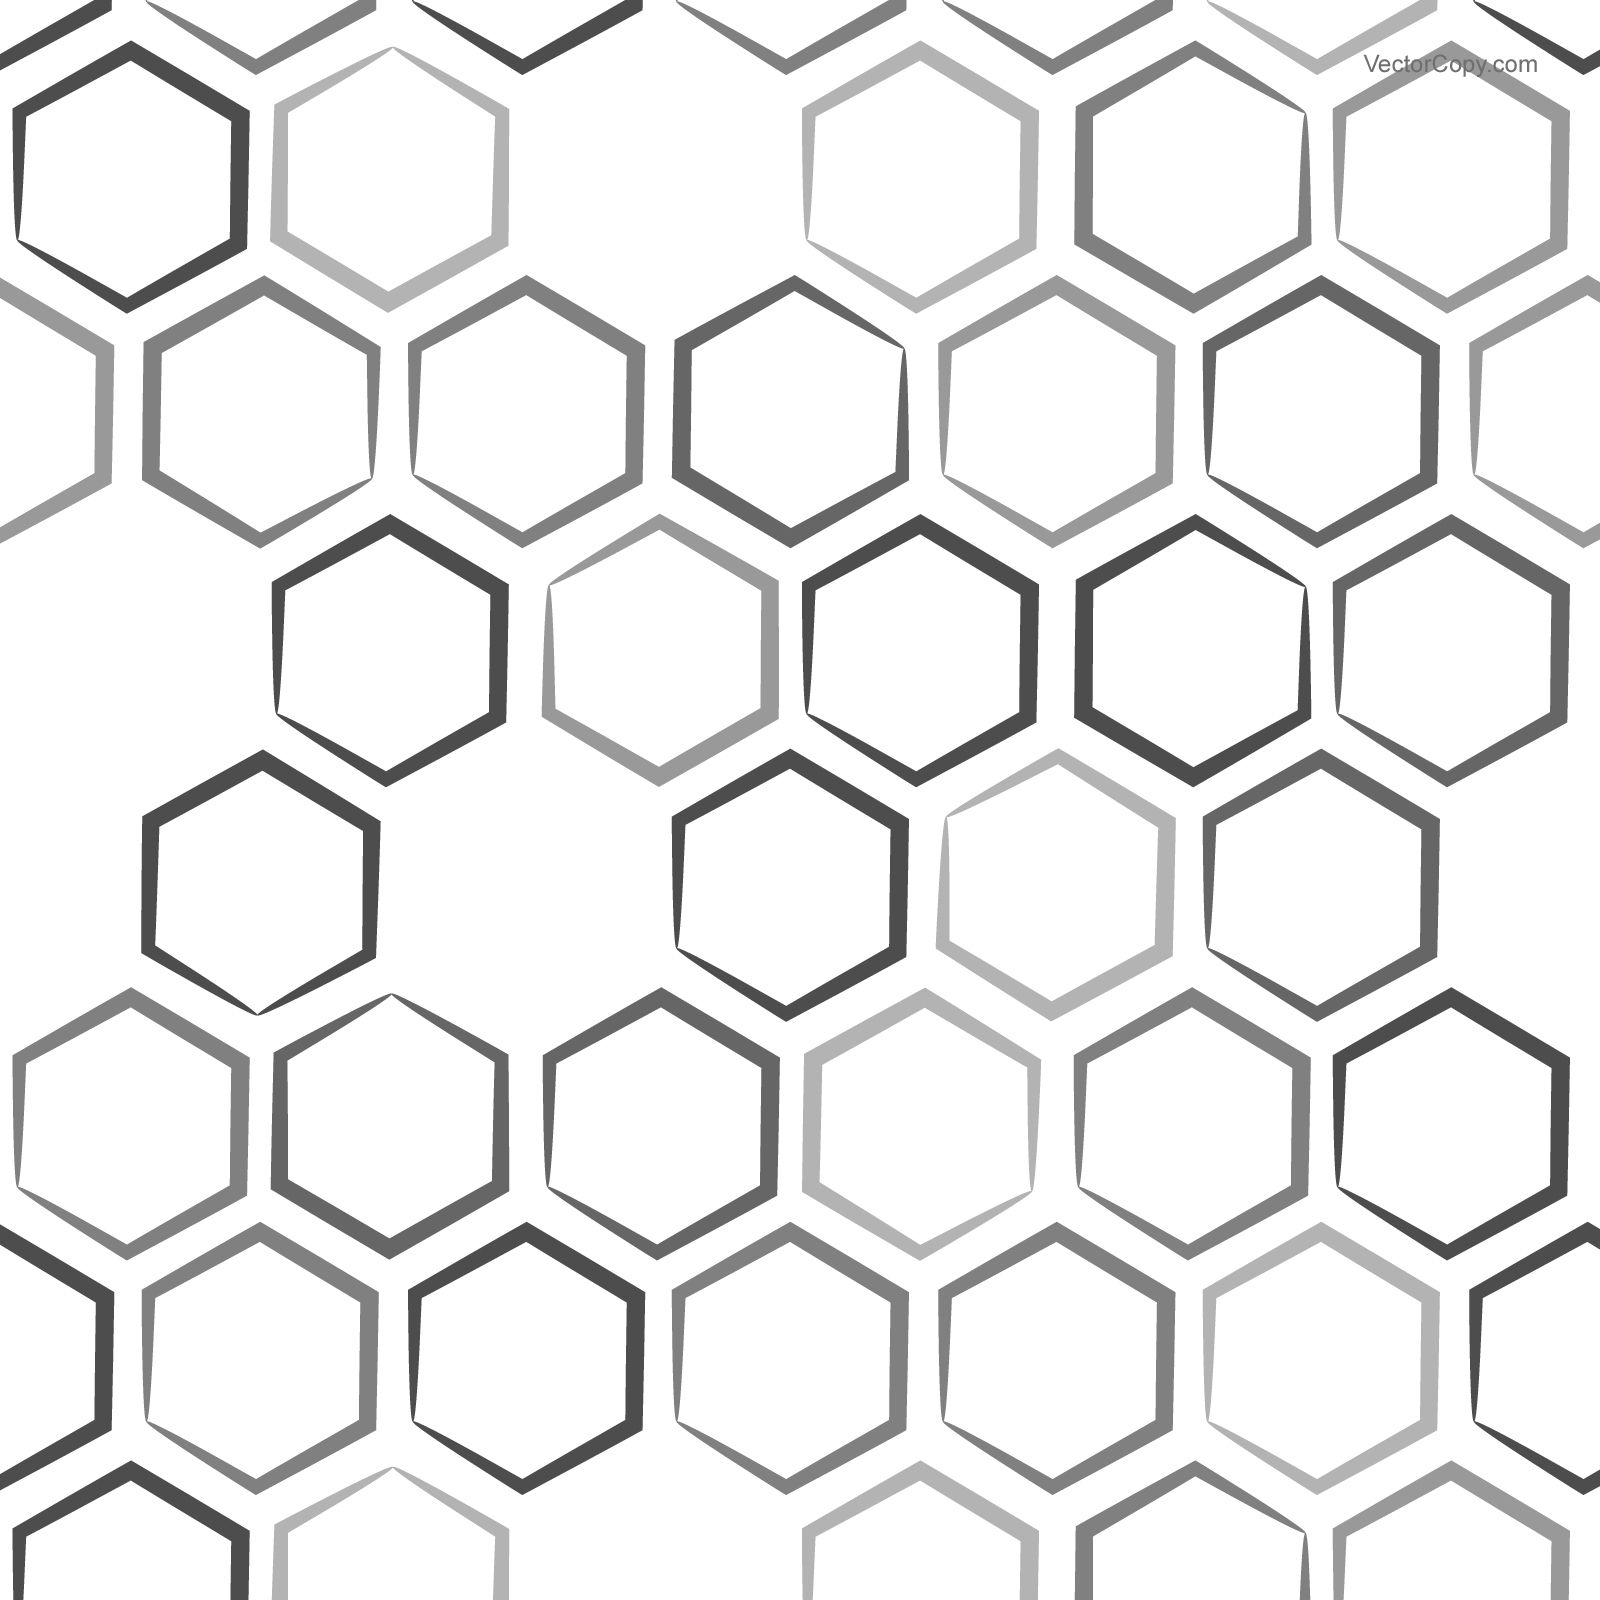 Hexagon (honeycomb) pattern, free vector | Backgrounds ...